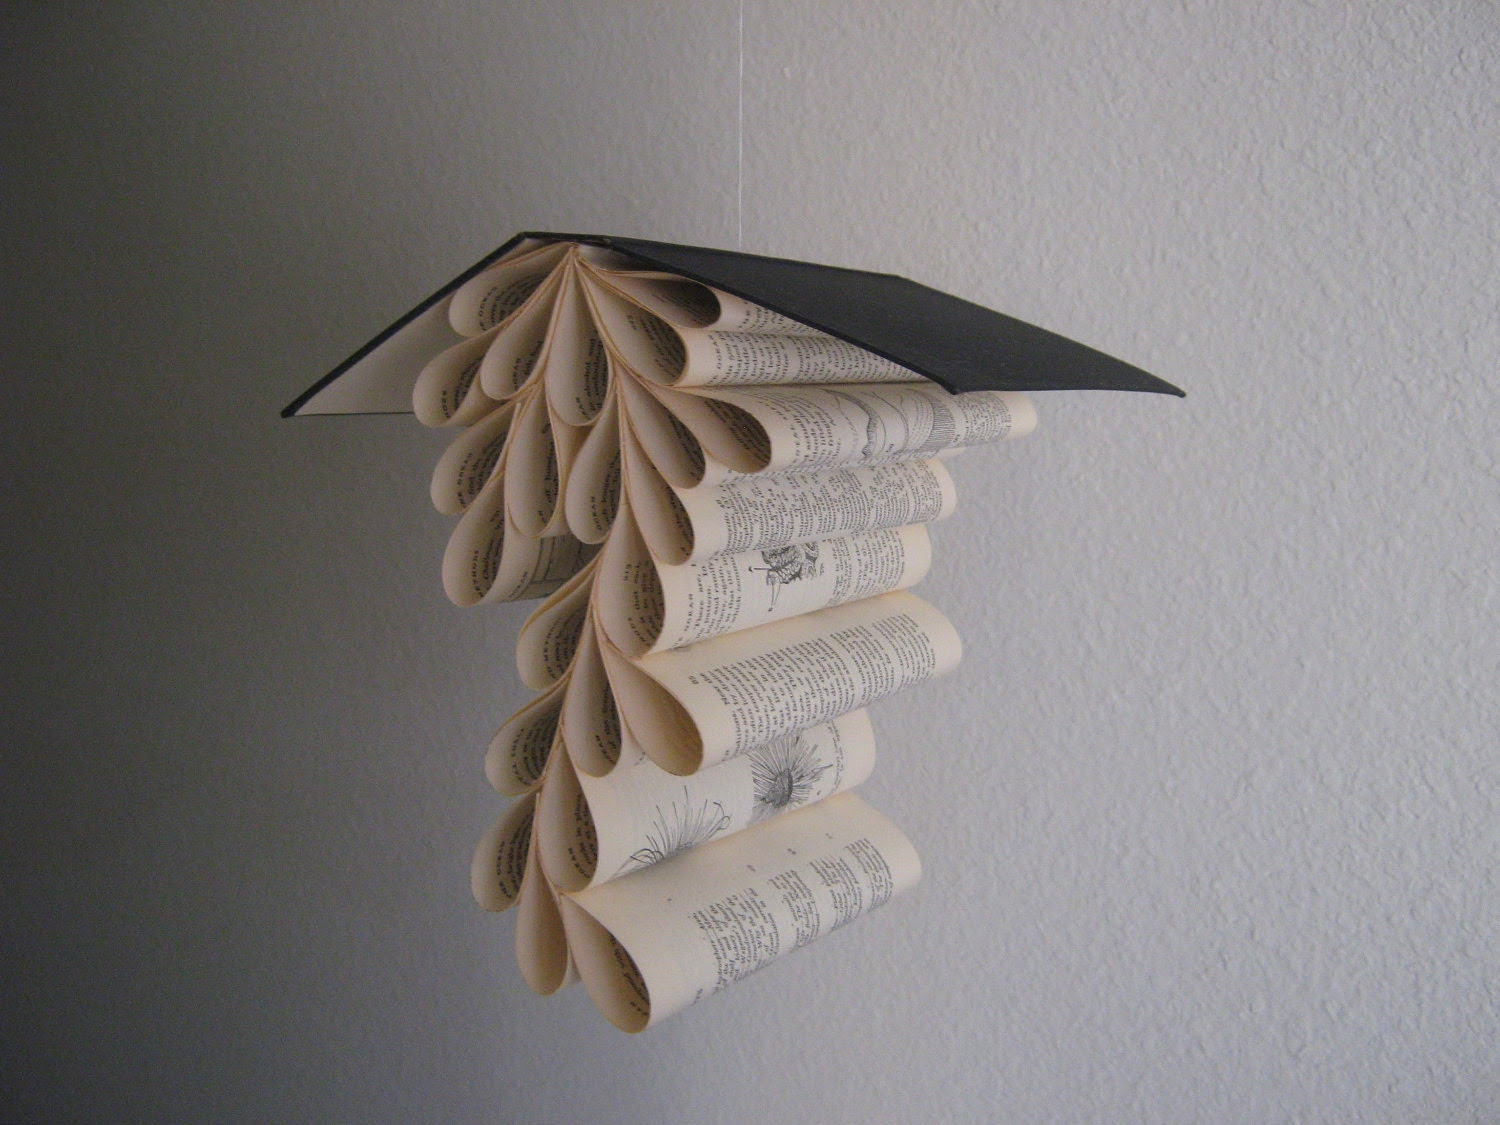 Book Mobile Upcycled from a Vintage Copy of Ocean by Ommanney from Oxford Press